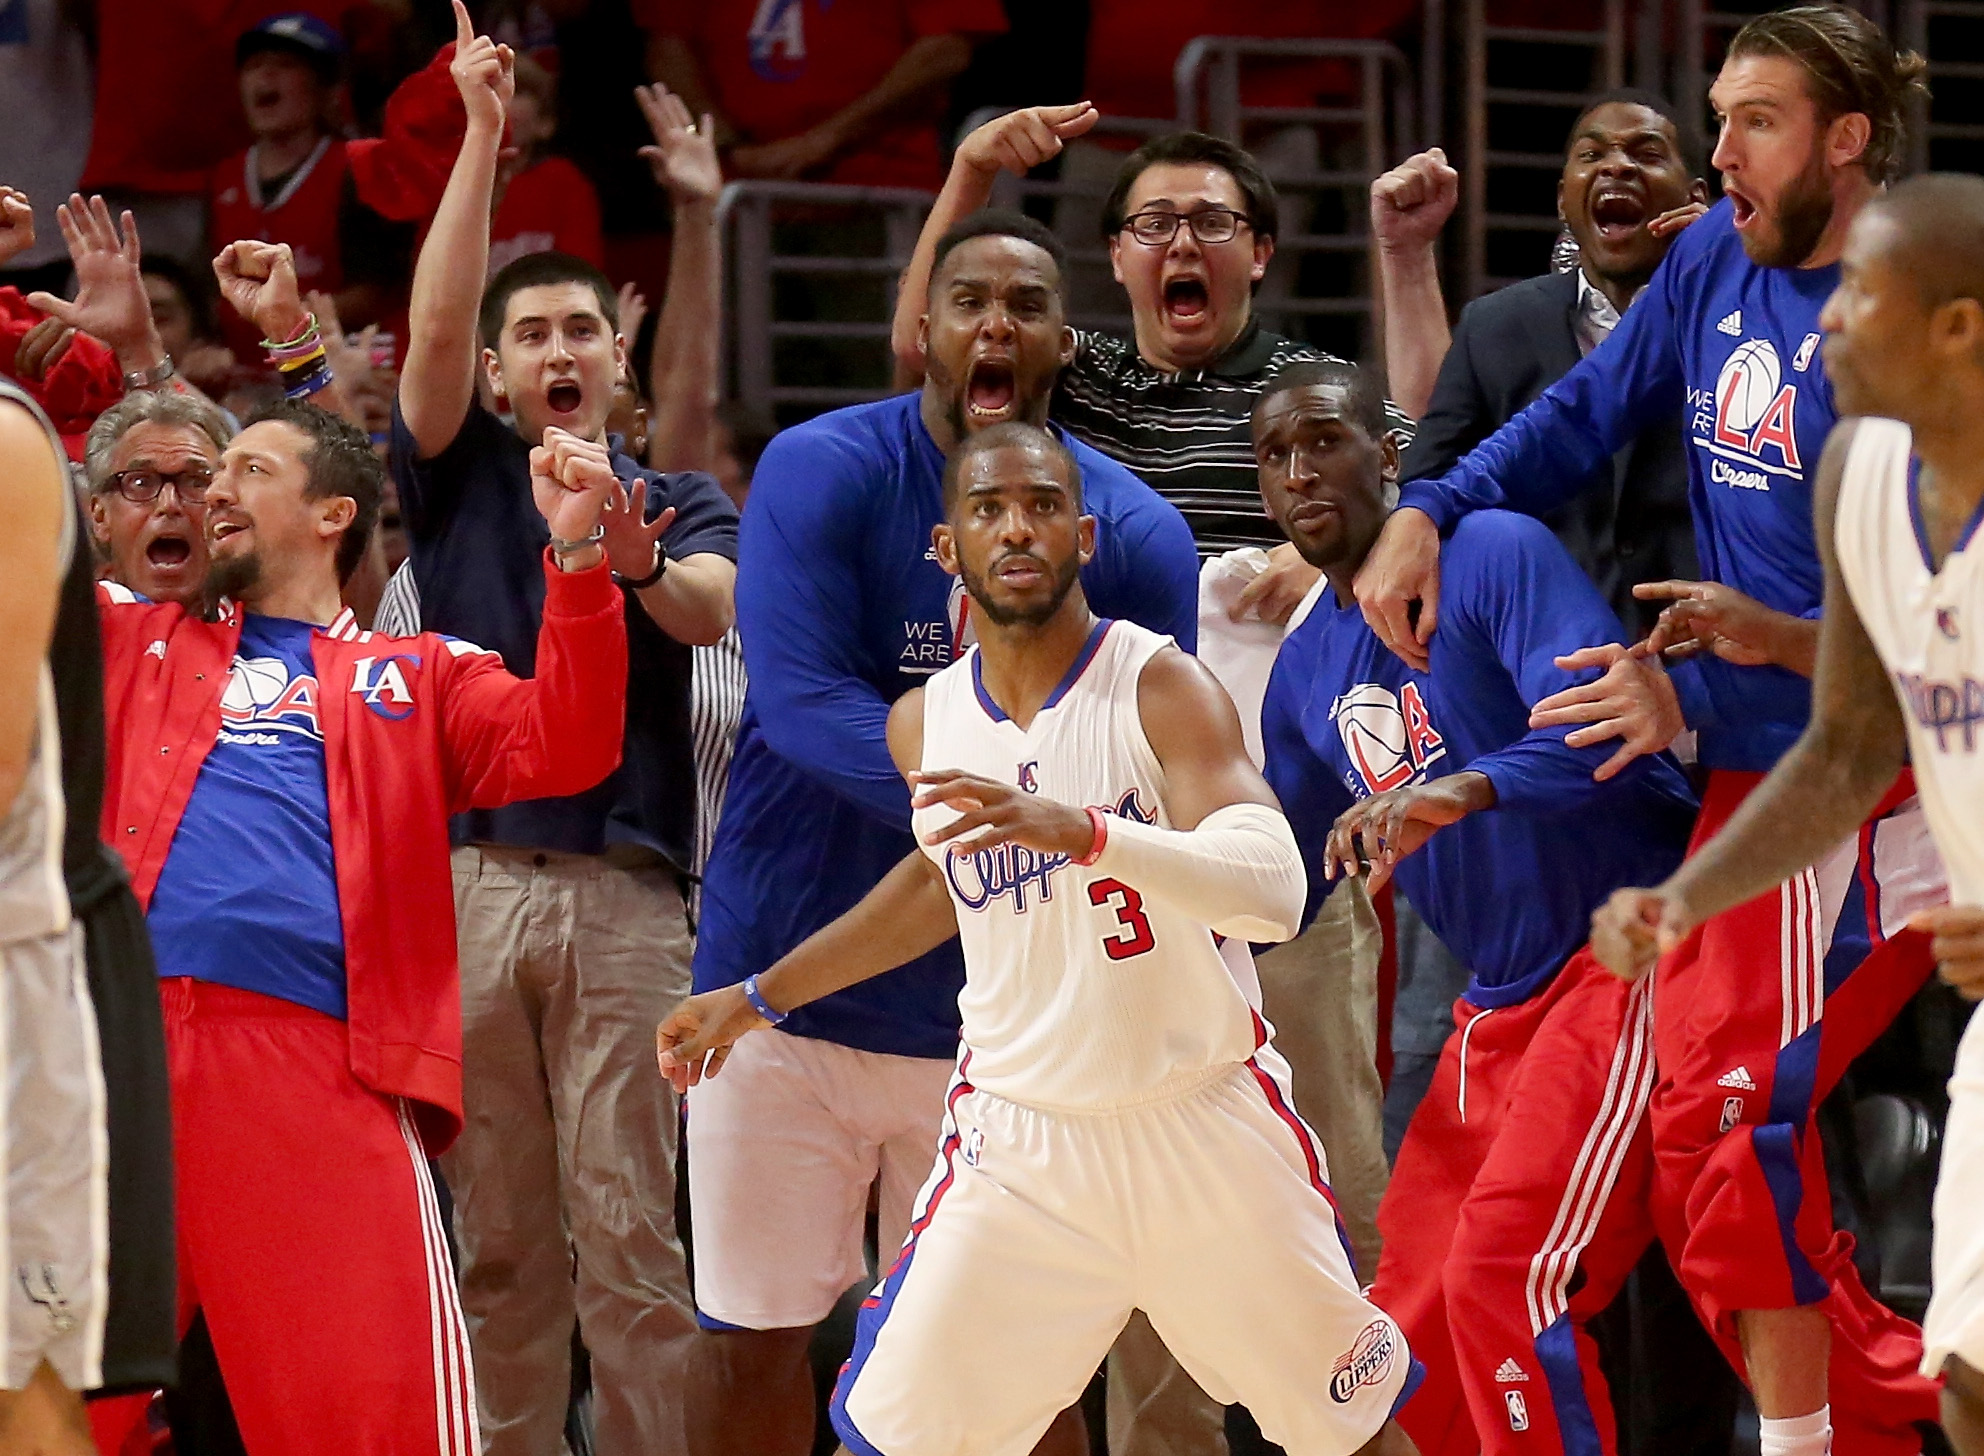 LOS ANGELES, CA - MAY 02:  Chris Paul #3 the Los Angeles Clippers and the Clippers bench react after Paul made a basket with one second remaining to give the Clippers the win against the San Antonio Spurs during Game Seven of the Western Conference quarte